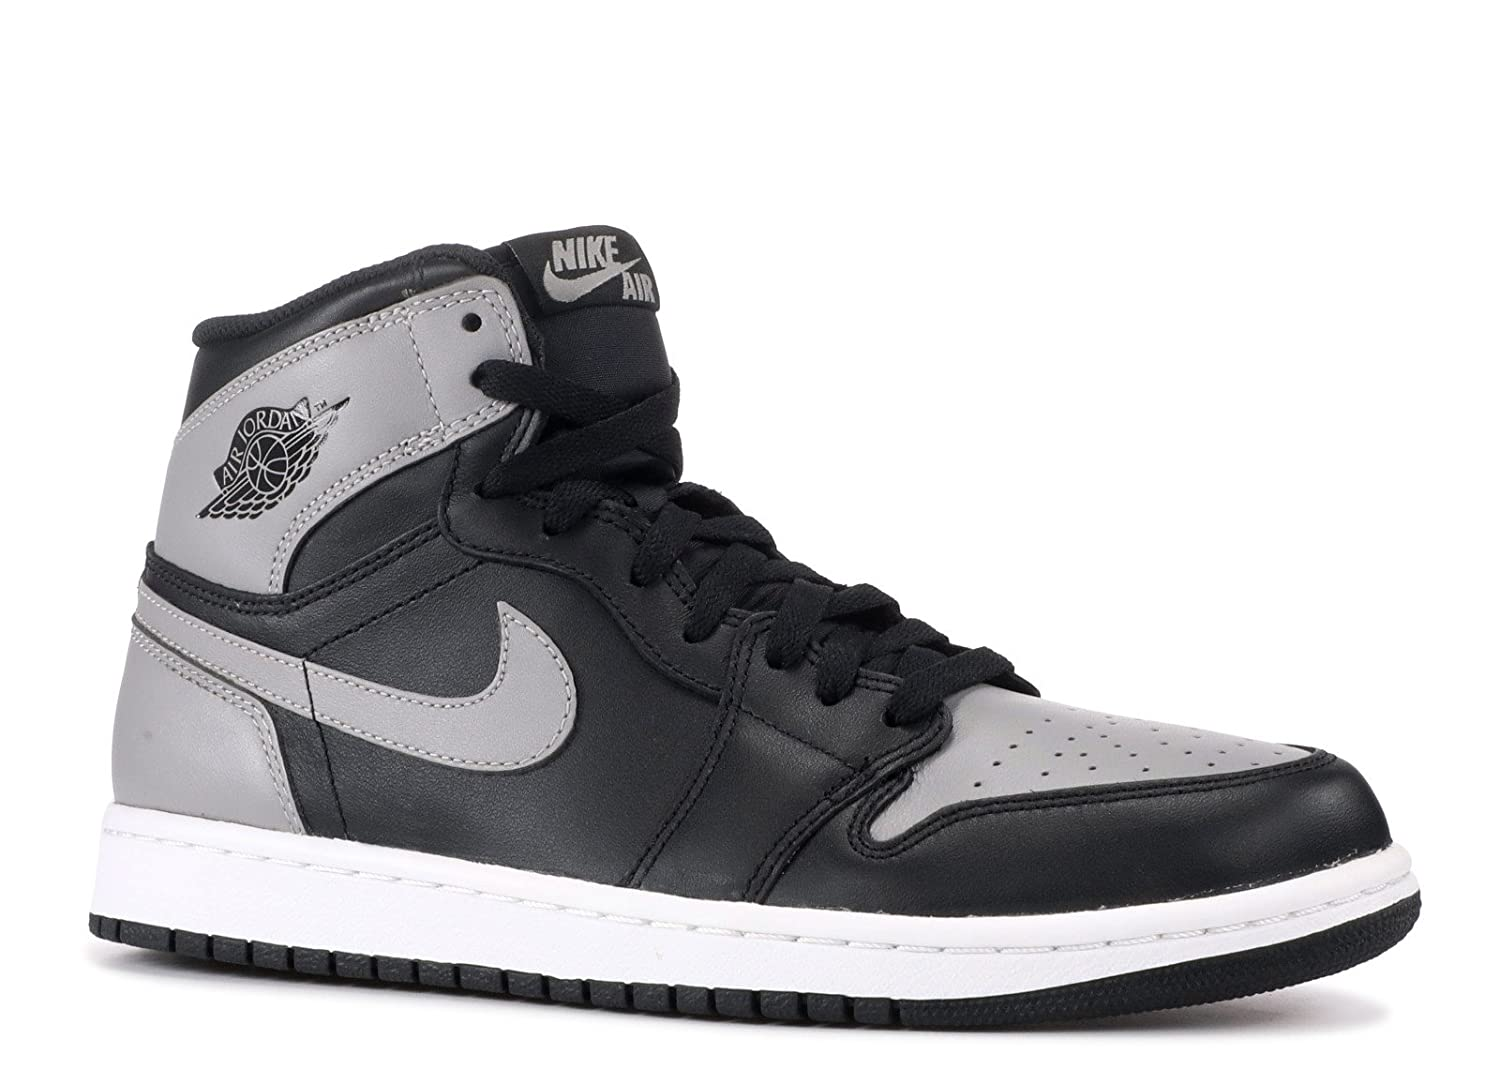 NIKE Air Jordan 1 Retro High OG (Shadow) Black/Soft Grey